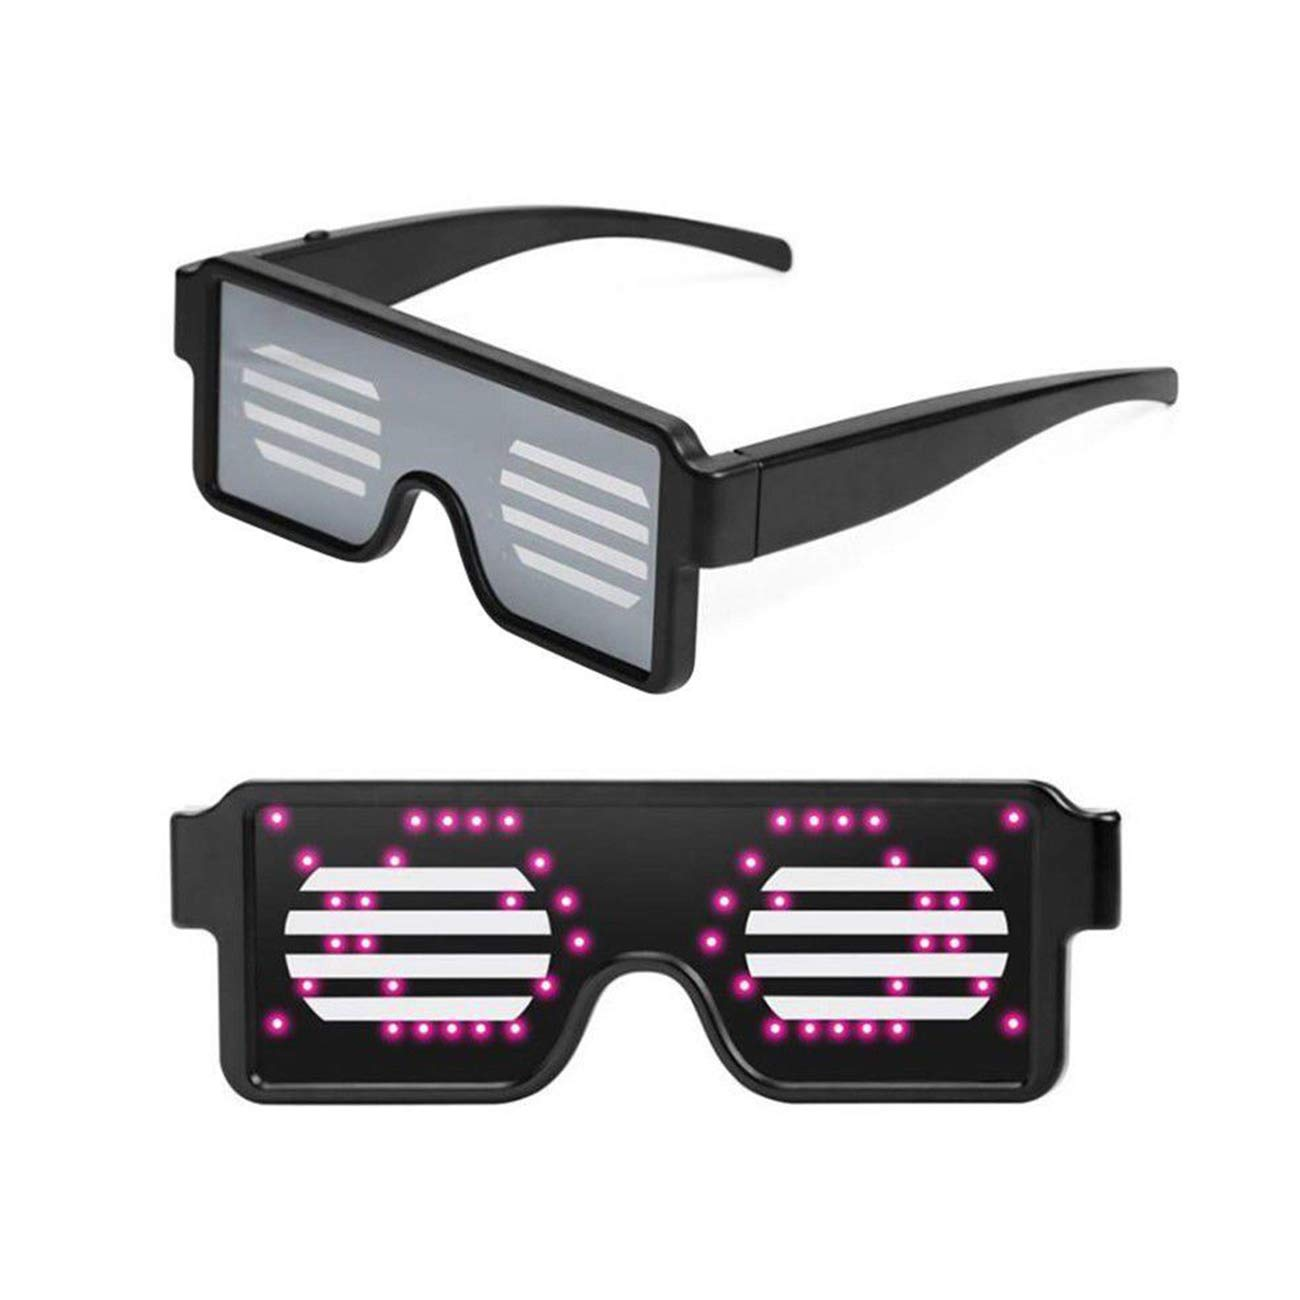 Halloween,Christmas Birthday Party imarron Pro LED Flashing Glasses Rechargeable Light Up Neon Shutter LED Glasses Festival Rave Party LED Eye Glasses with 8 Modes for Kids and Adults in Club